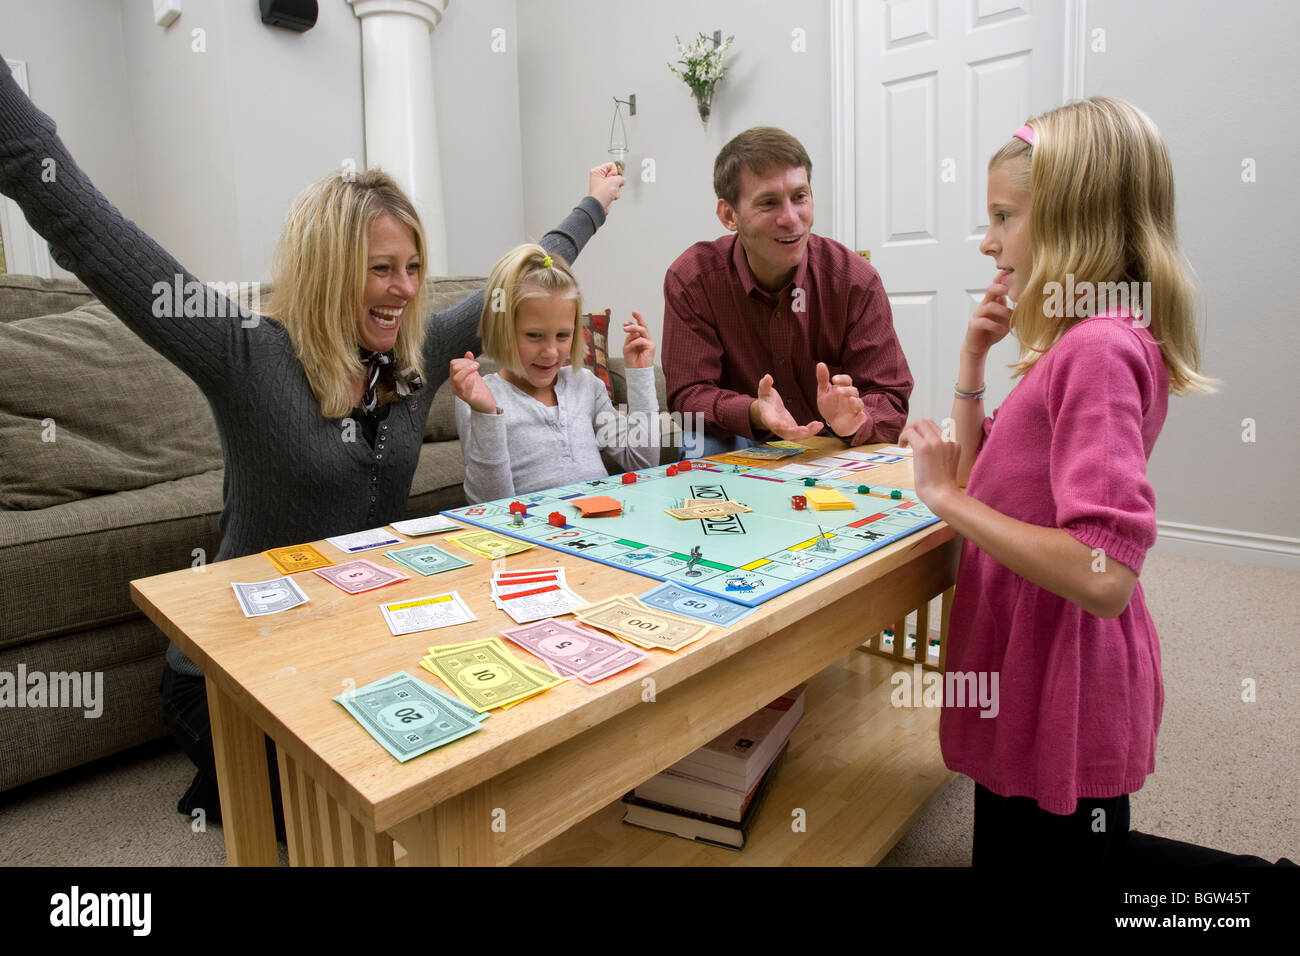 Family playing board game, Monopoly - Stock Image